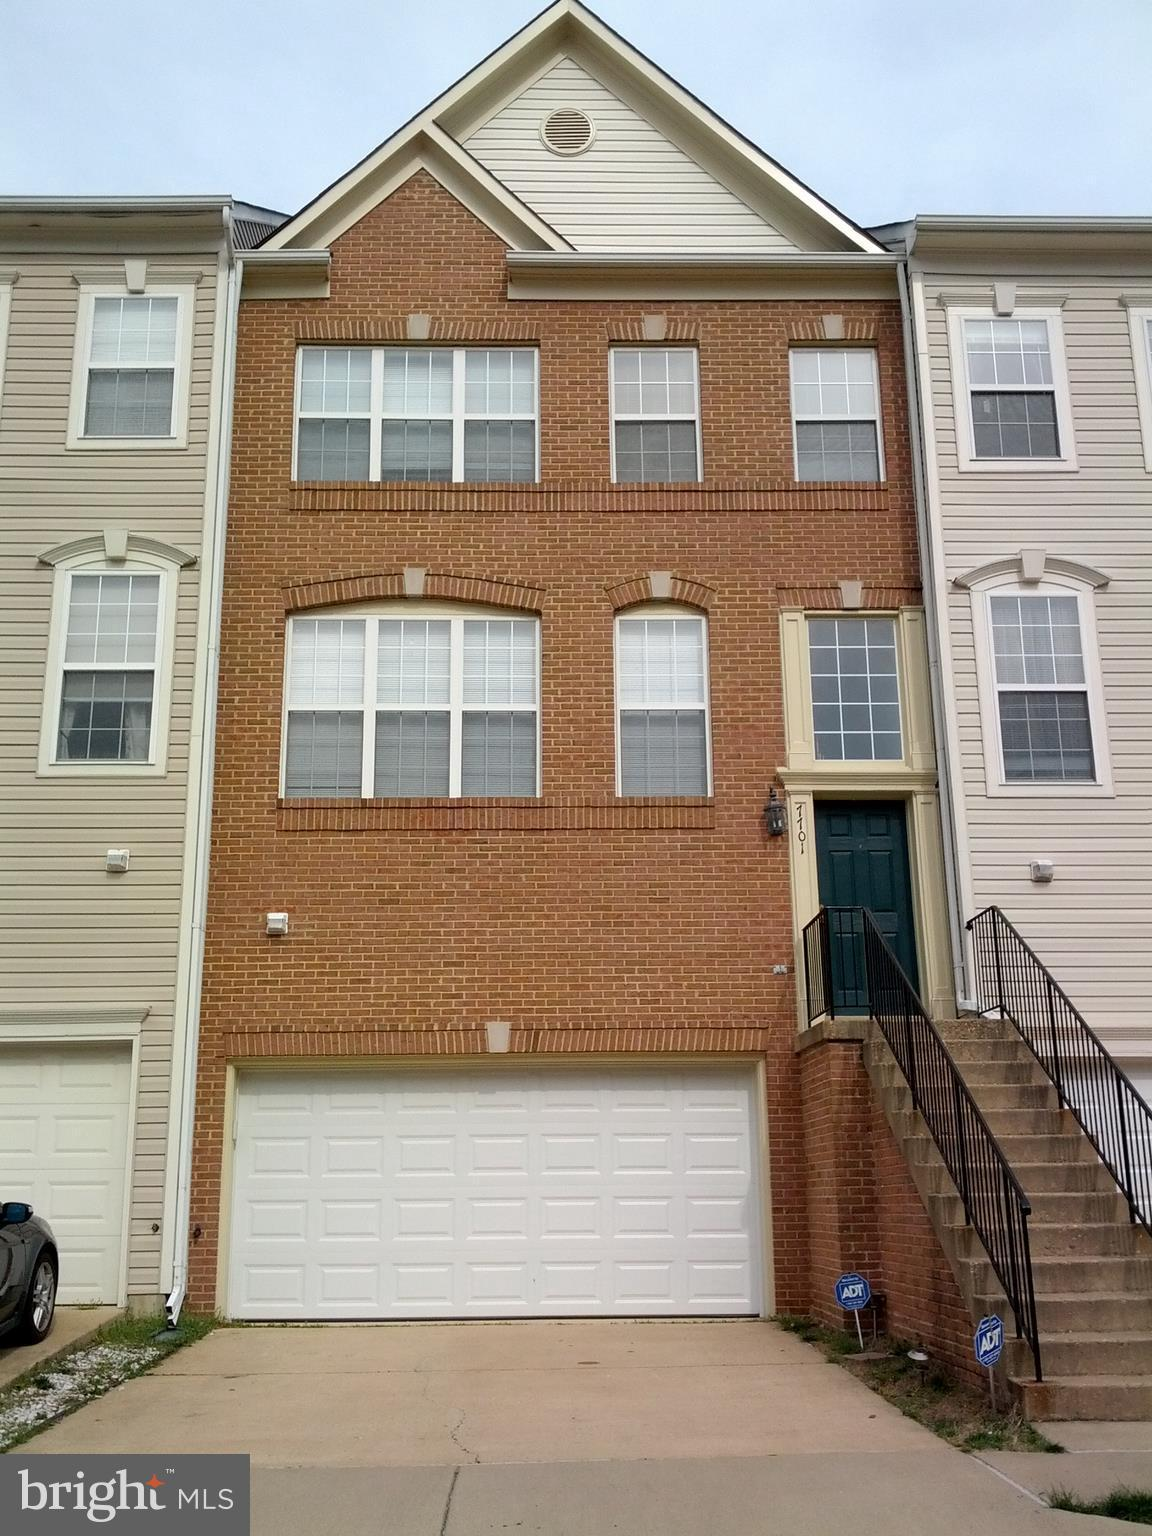 PRICE REDUCED! Seller will help with closing cost! One of Island Creek's largest TWH. A Must See! A spacious brick front 3 level 2 car garage.This Townhome has 3 Bedrooms and 2.5 Baths. Large Master bedroom is a luxury retreat, with vaulted ceilings, walk-in closet, dual vanities, whirlpool tub &large shower.Ideally located near Wegmans, Springfield Center & Metro. Close to Ft. Belvoir.